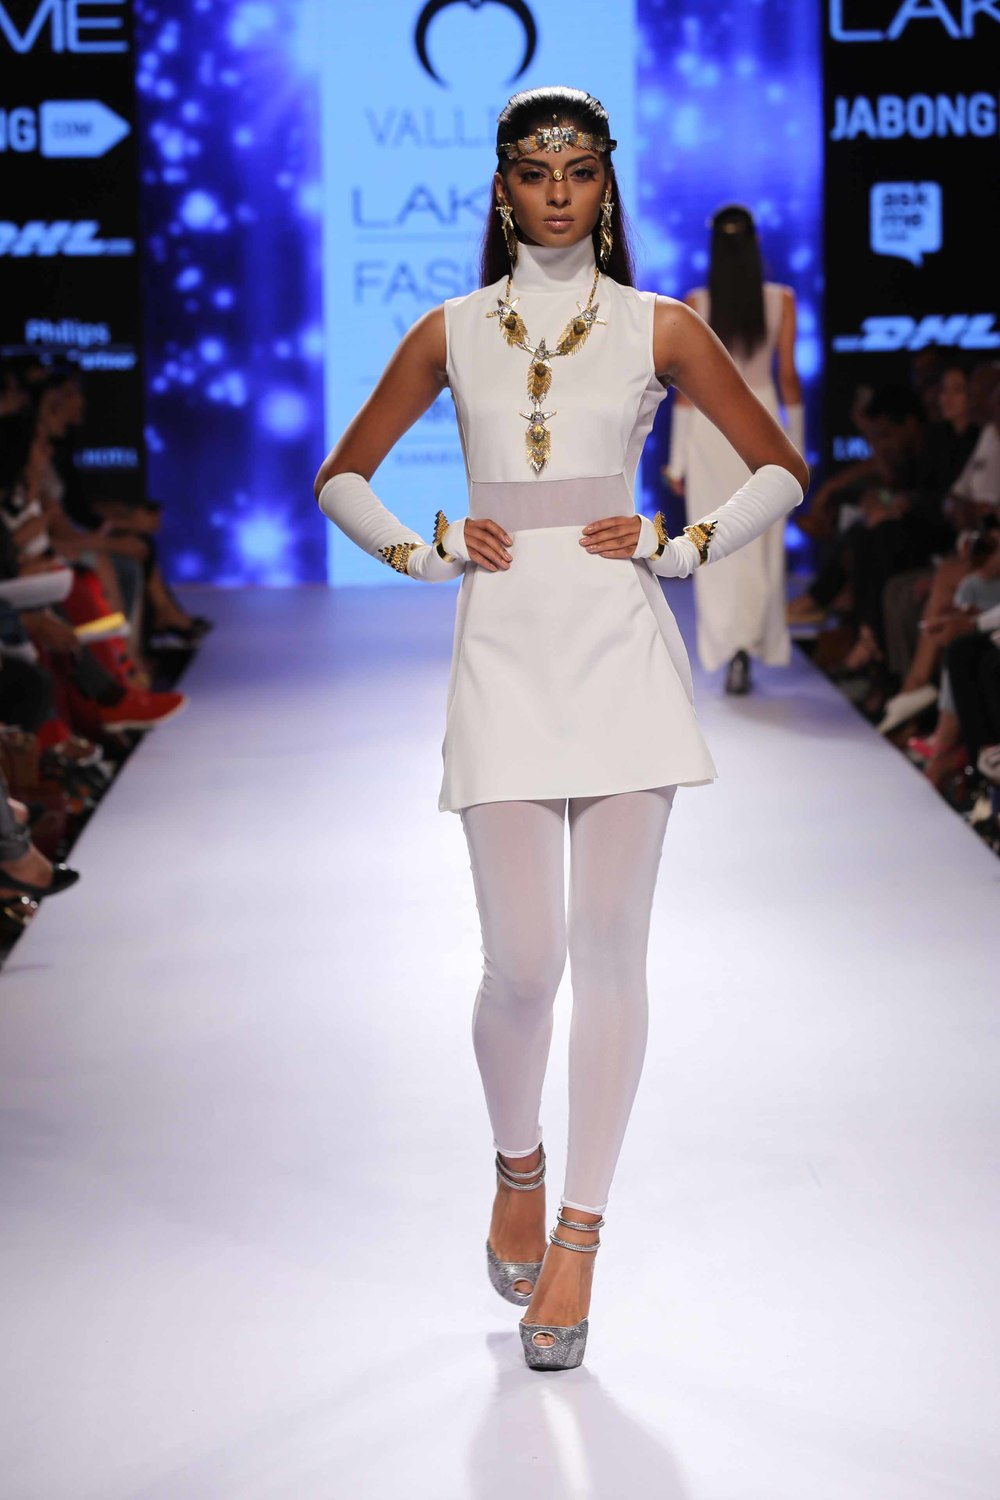 Valliyan by Nitya Arora - Lakme Fashion Week Summer/Resort 2015